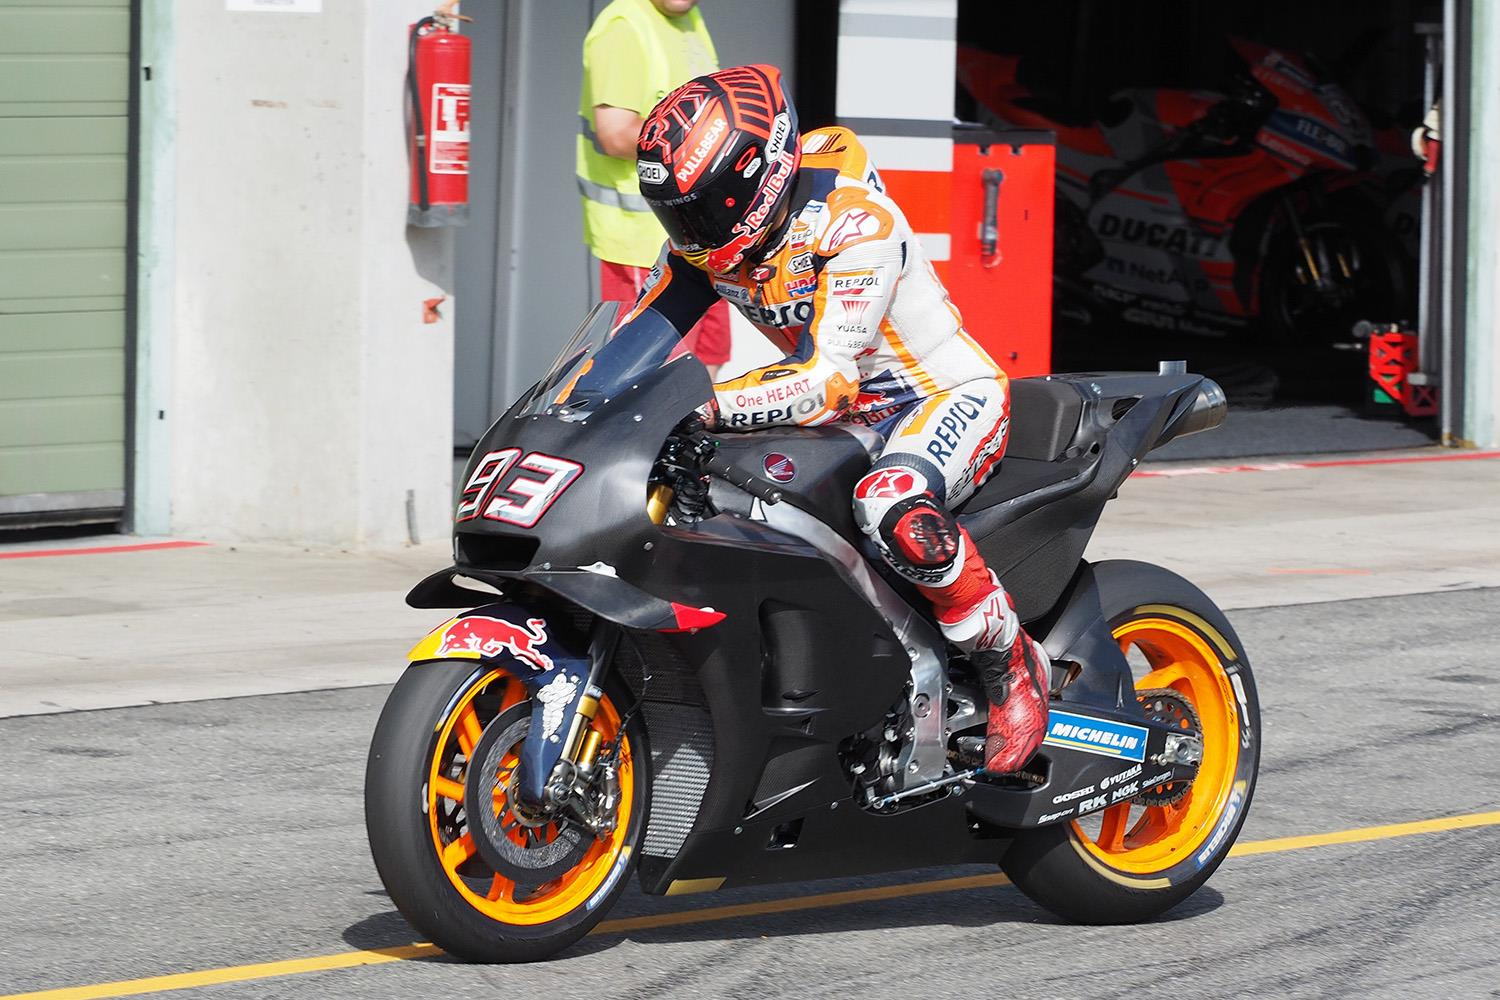 Motogp Marquez Tops One Day Test At Brno